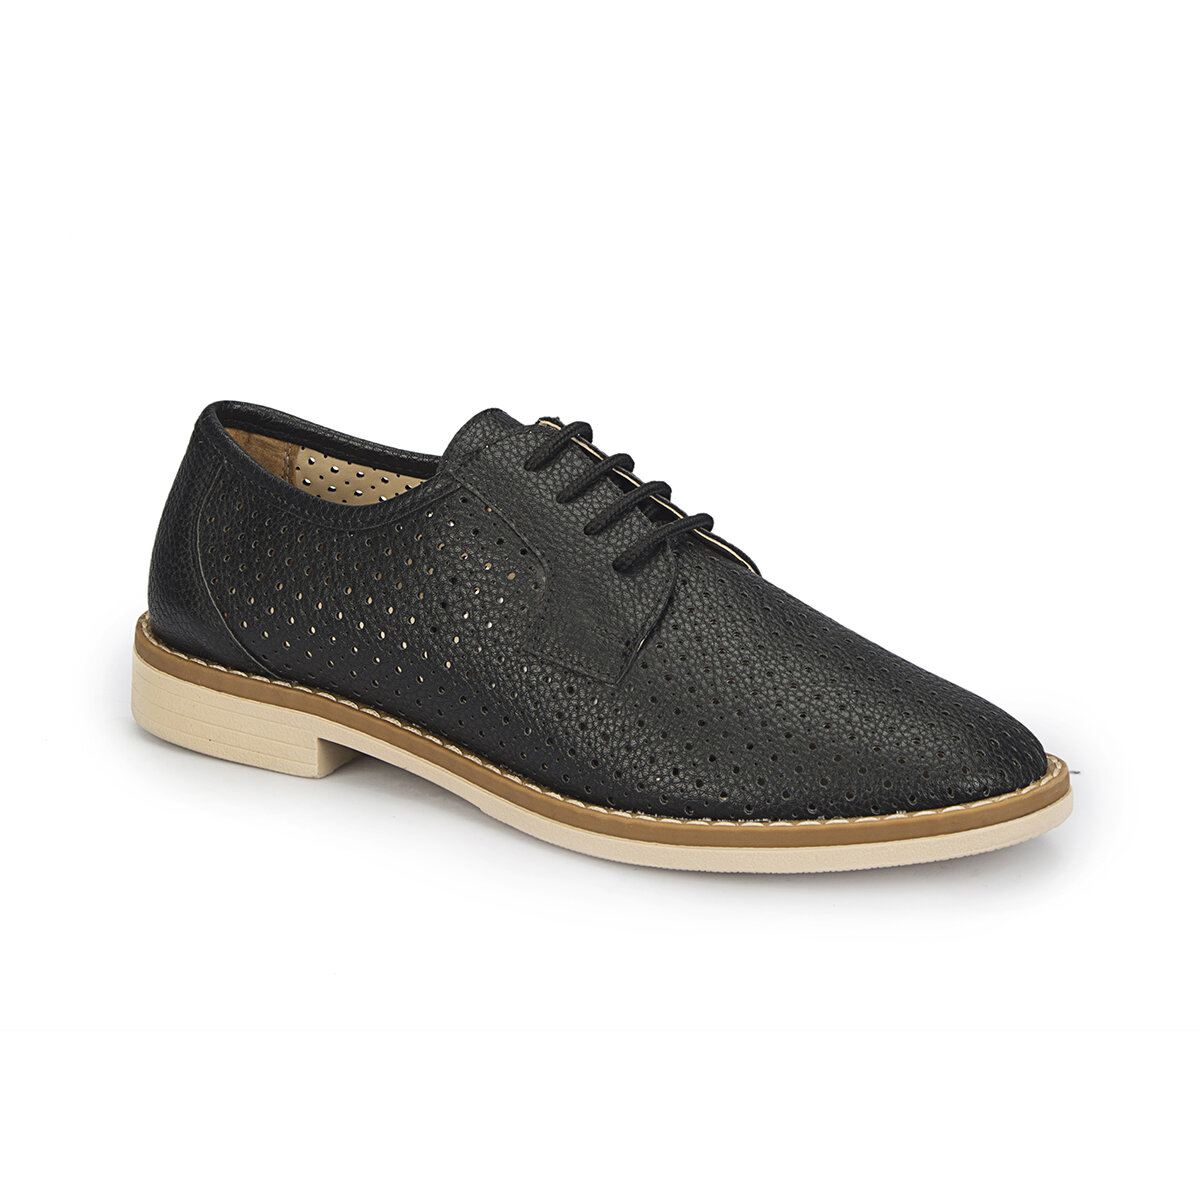 FLO 81.309994.Z Black Women Oxford Shoes Polaris